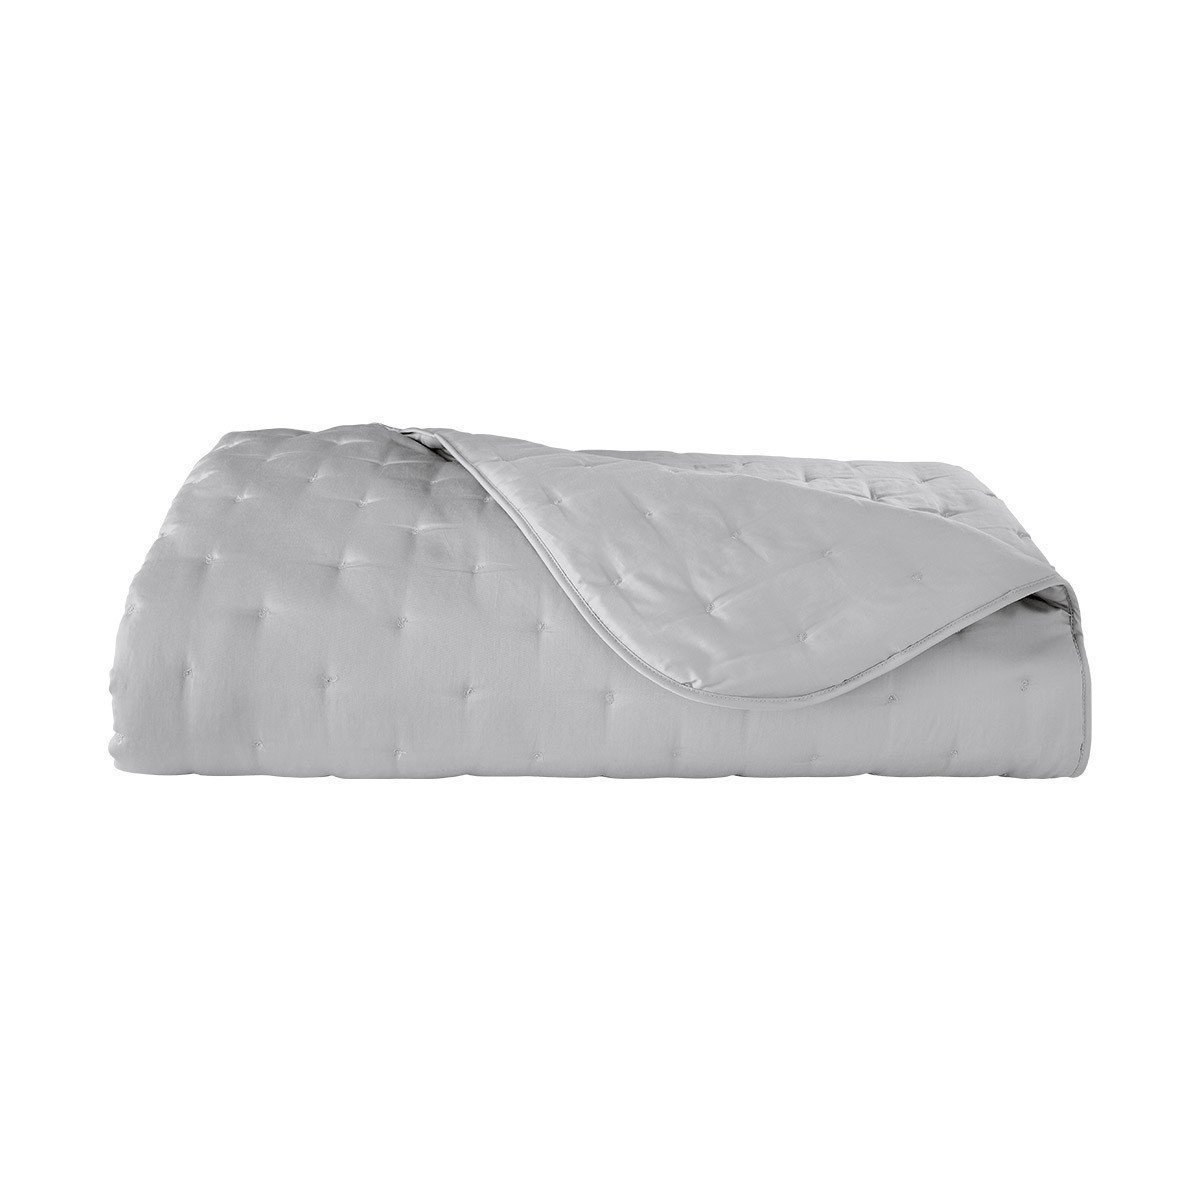 Yves Delorme Triomphe Quilt Nacre Silver